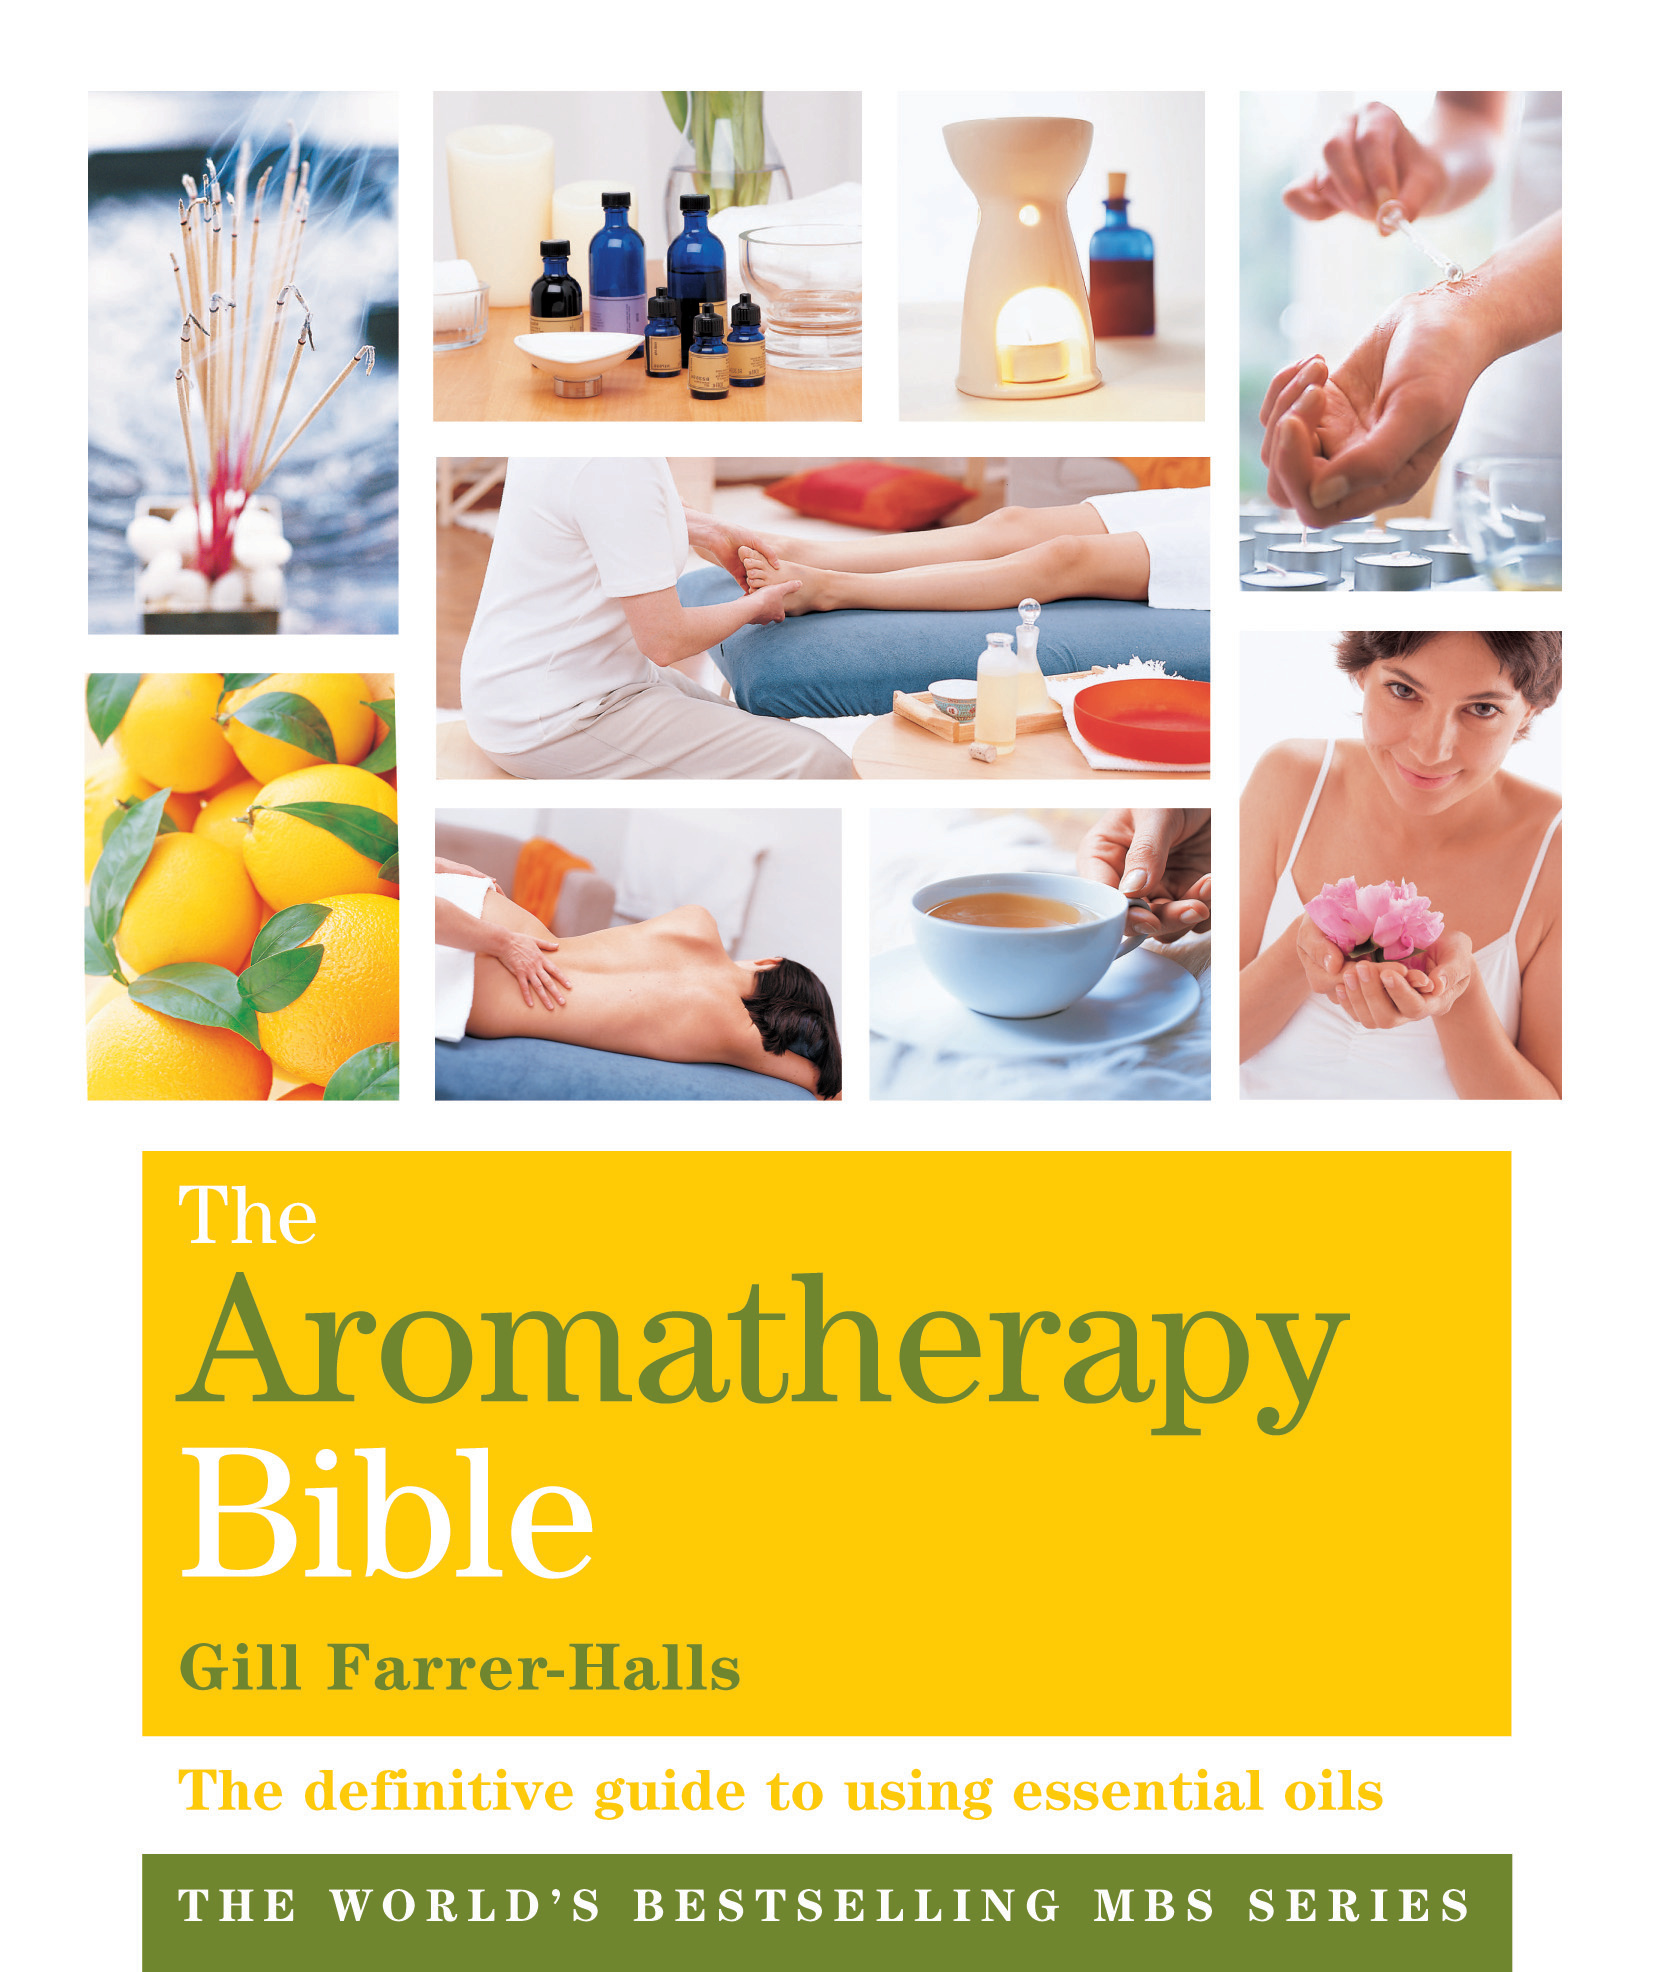 The Aromatherapy Bible: The definitive guide to using essential oils by Gill Farrer-Halls, ISBN: 9781841813769